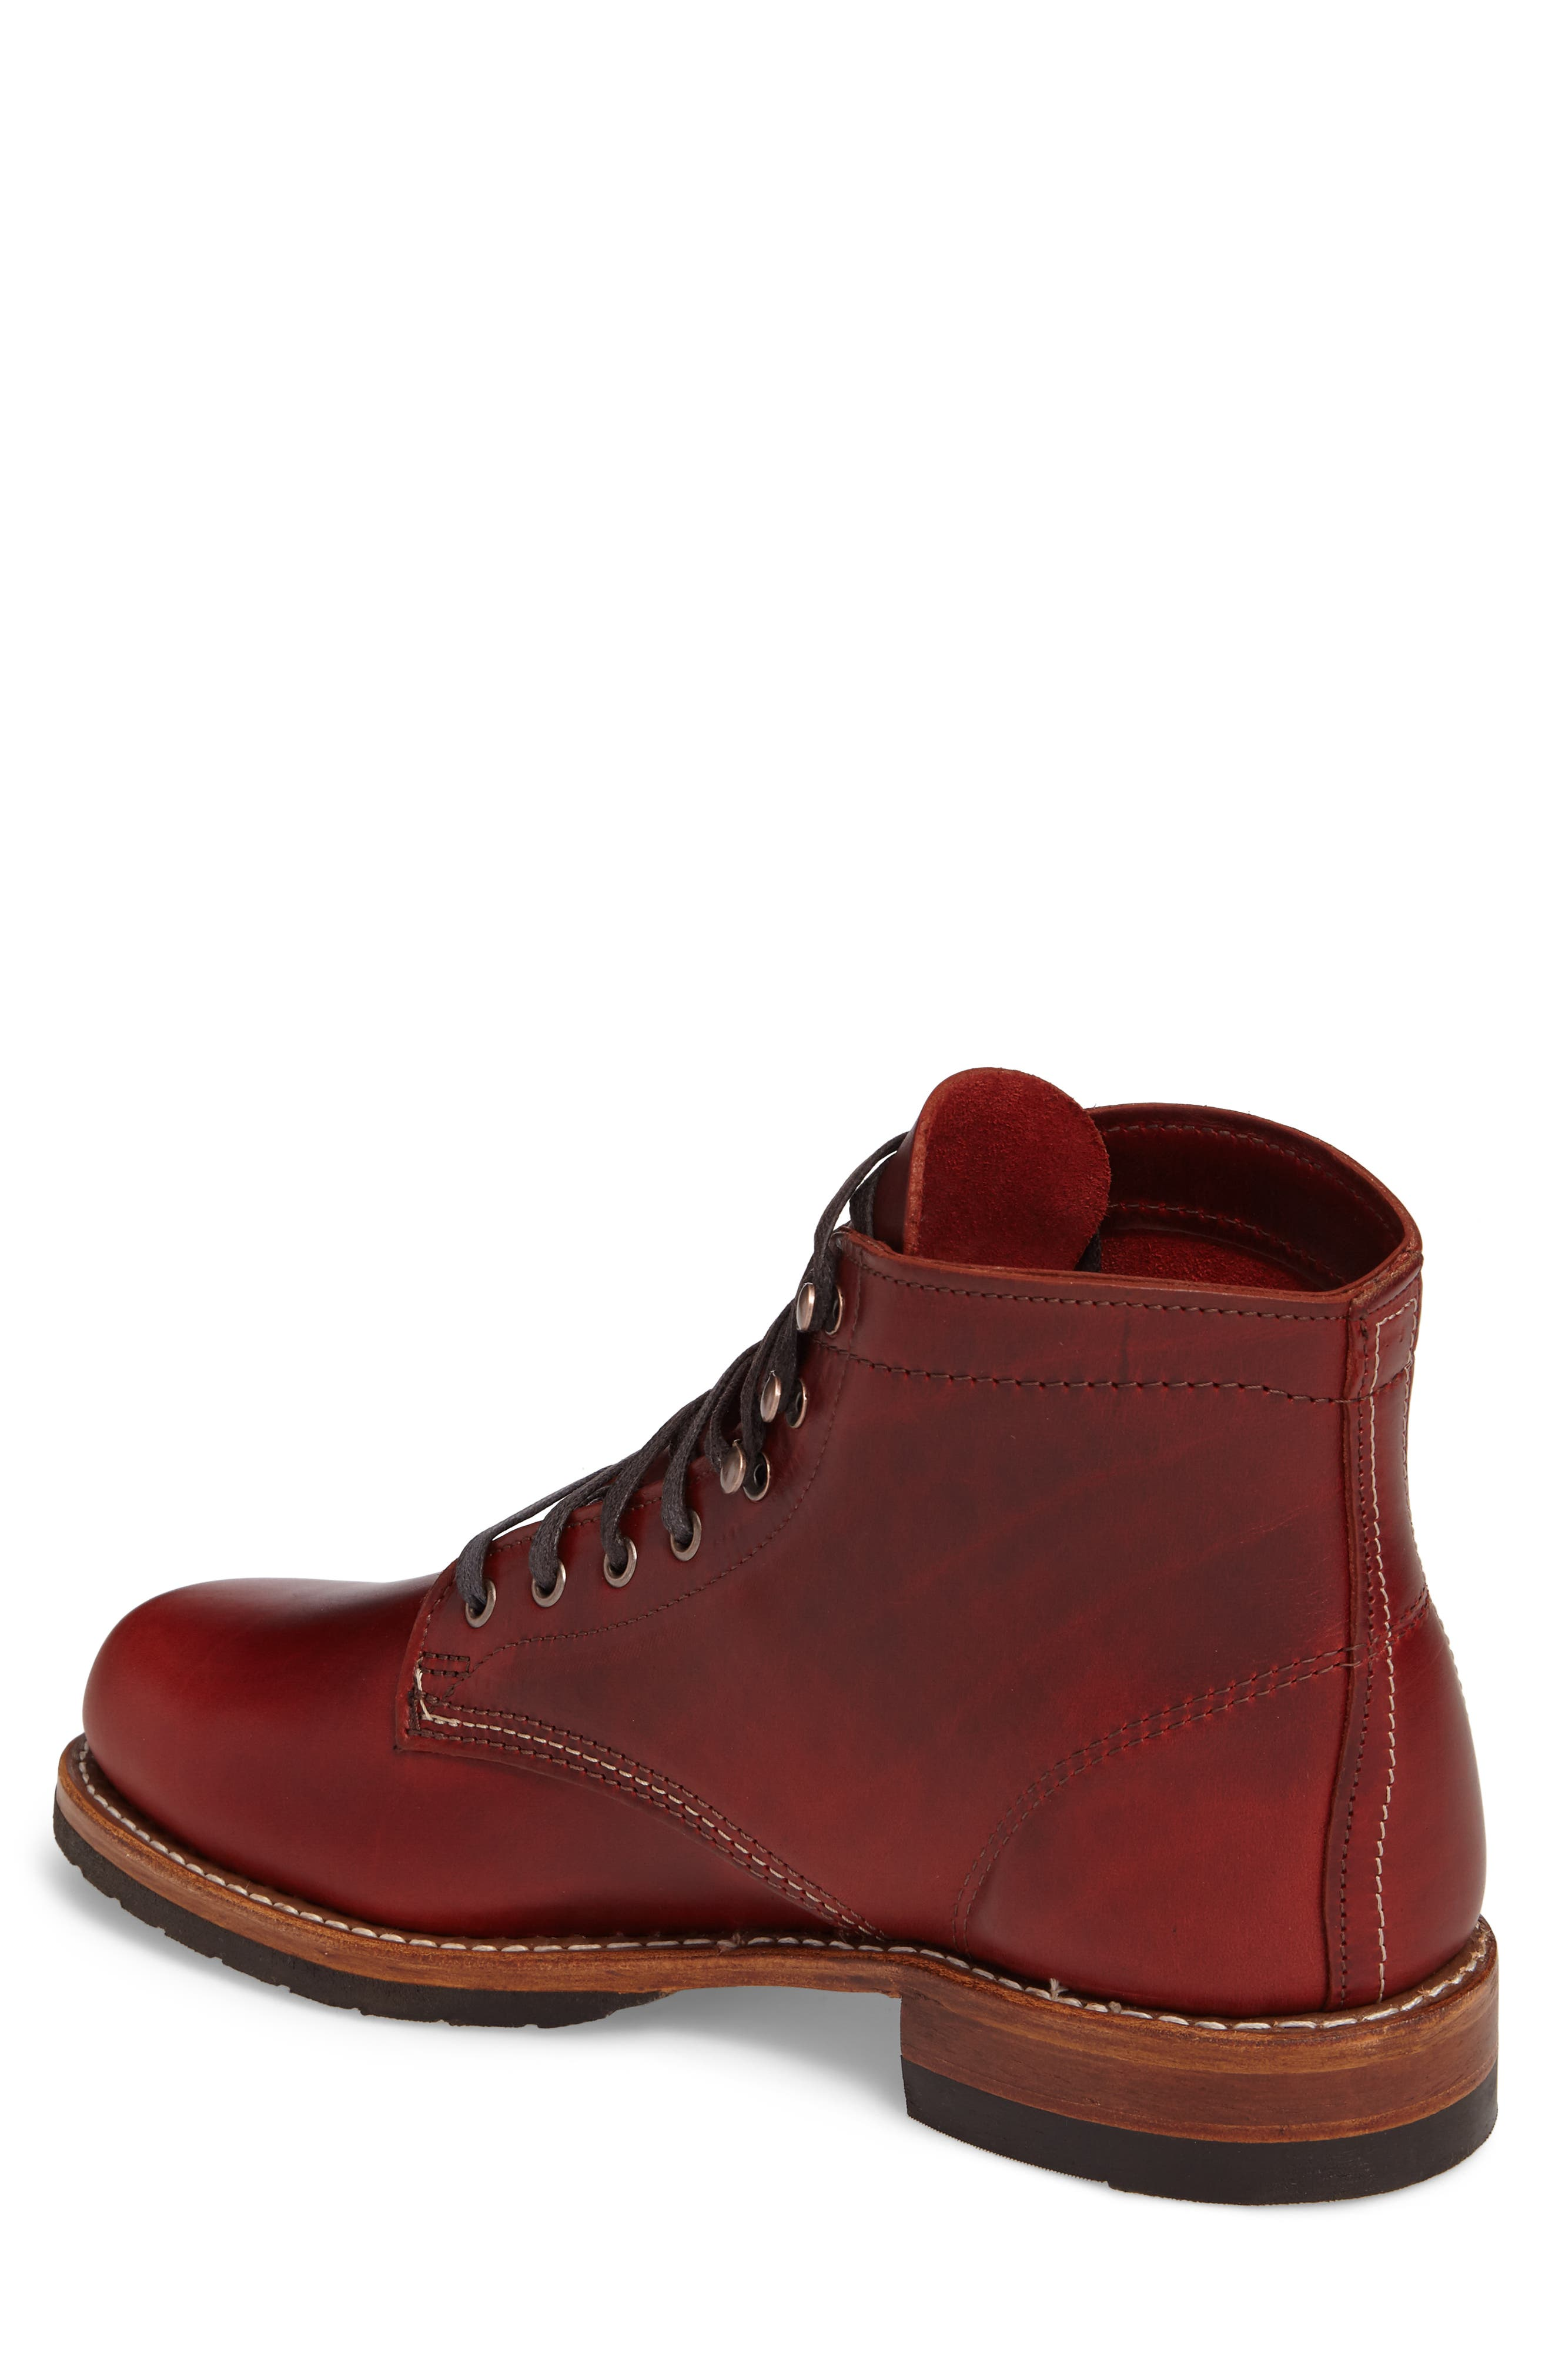 Evans Plain Toe Boot,                             Alternate thumbnail 2, color,                             Red Leather